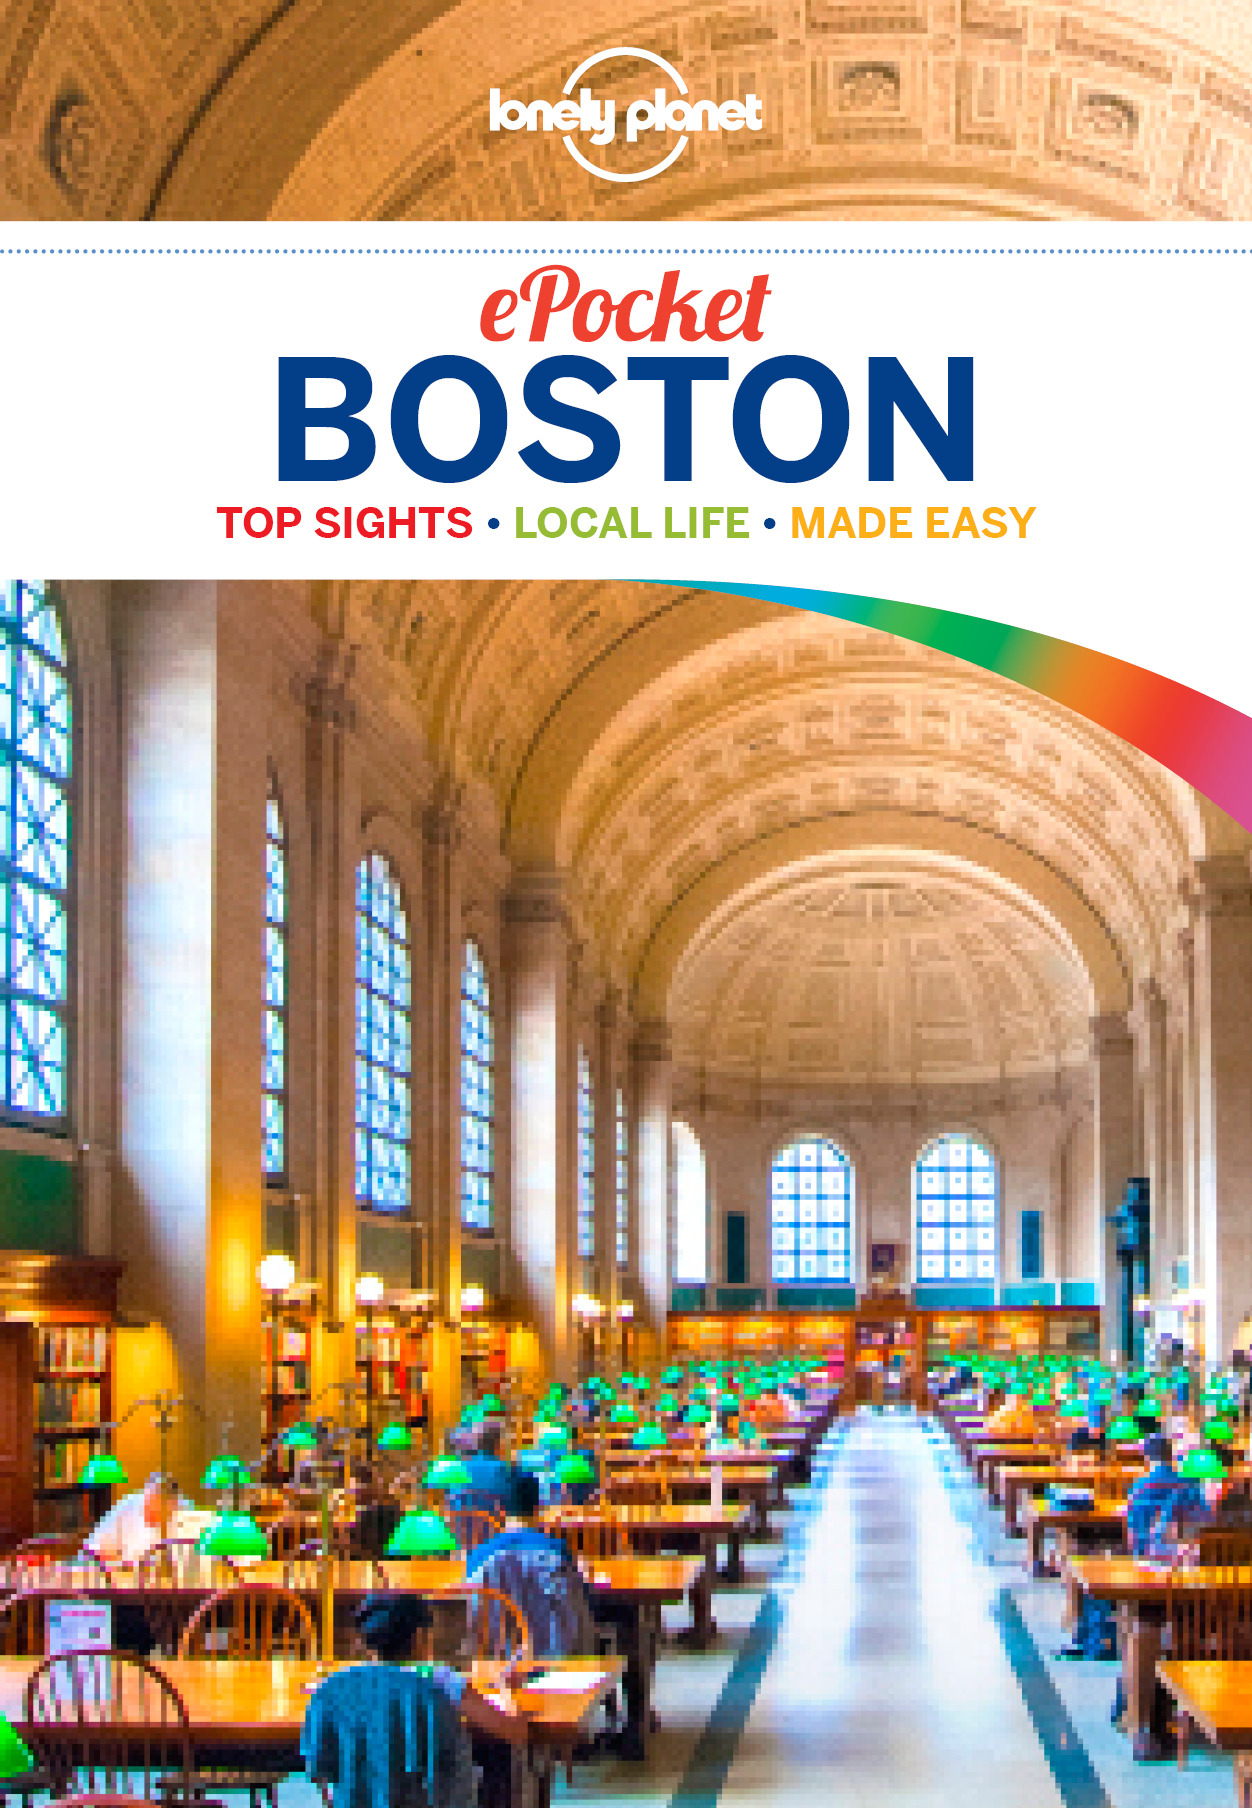 Planet, Lonely - Lonely Planet Pocket Boston, ebook